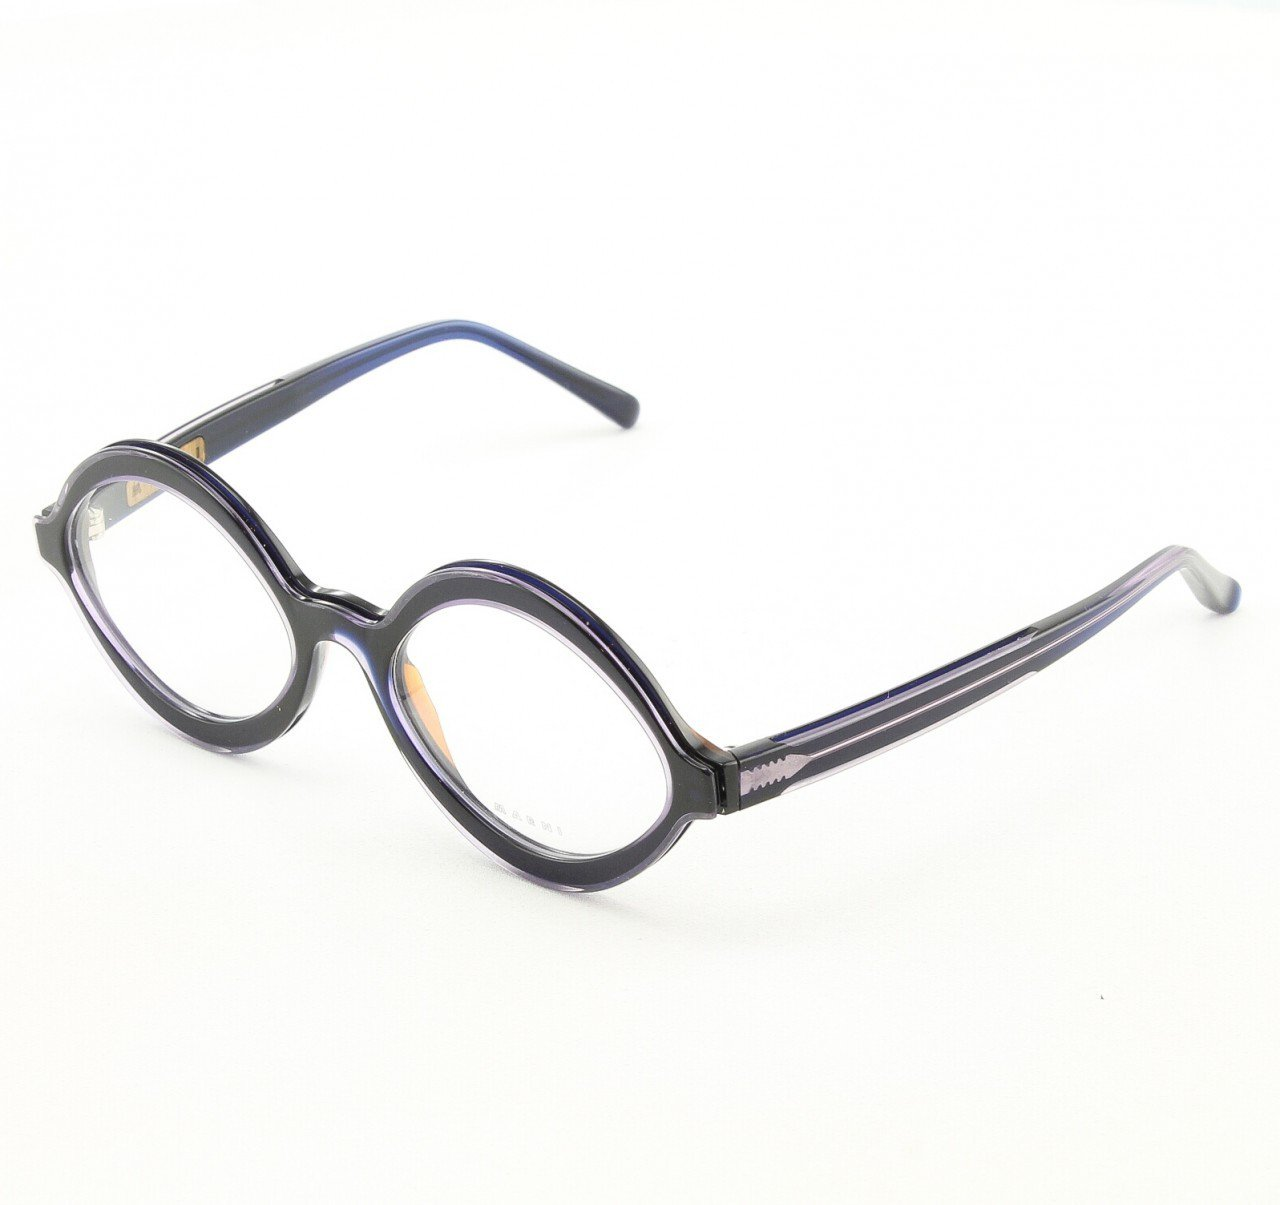 Marni MA671S Eyeglasses Col. 05 Midnight Purple with Clear Lenses